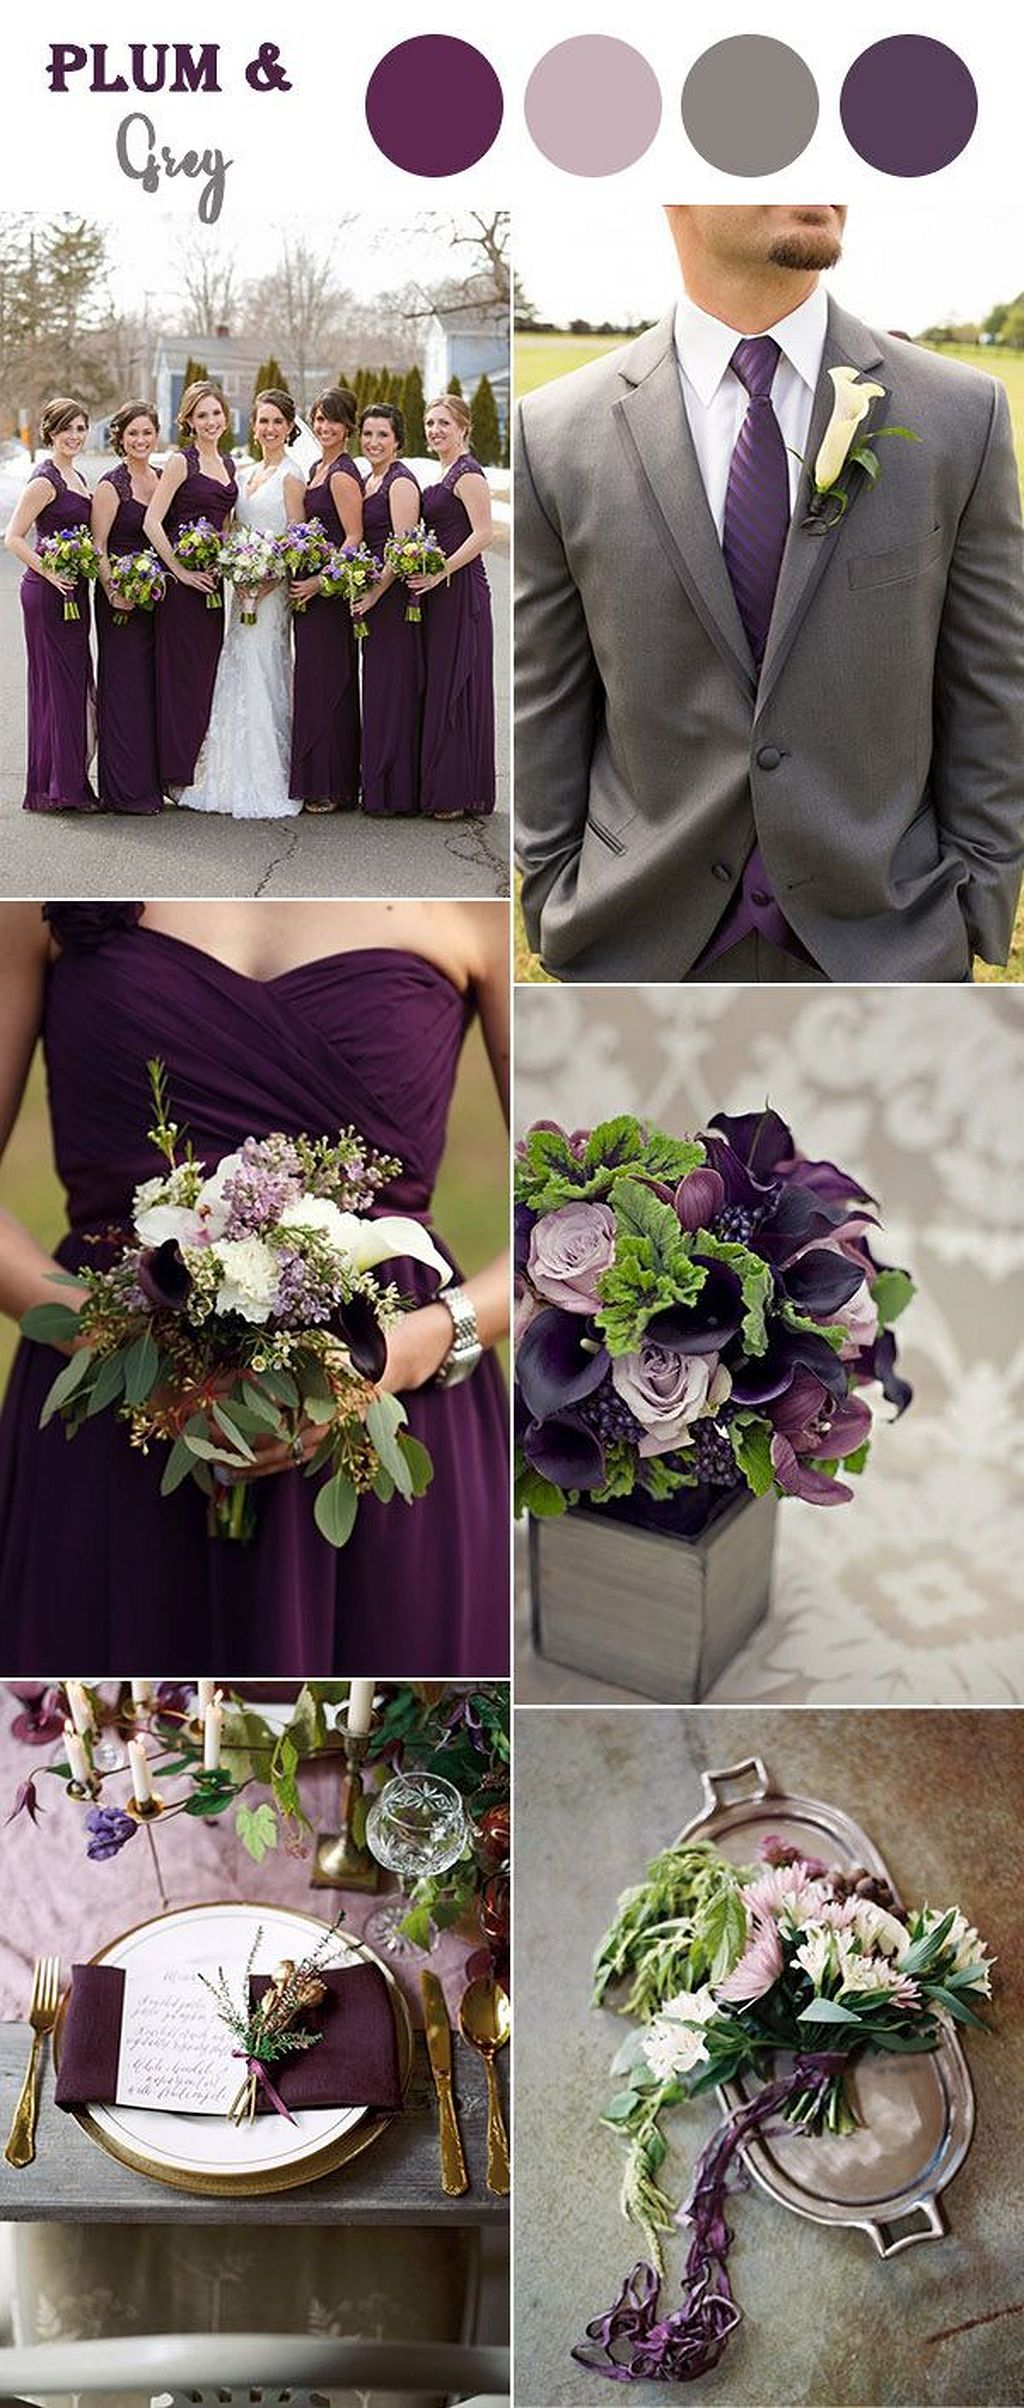 Tips For Looking Your Best On Your Wedding Day Wedding Plum